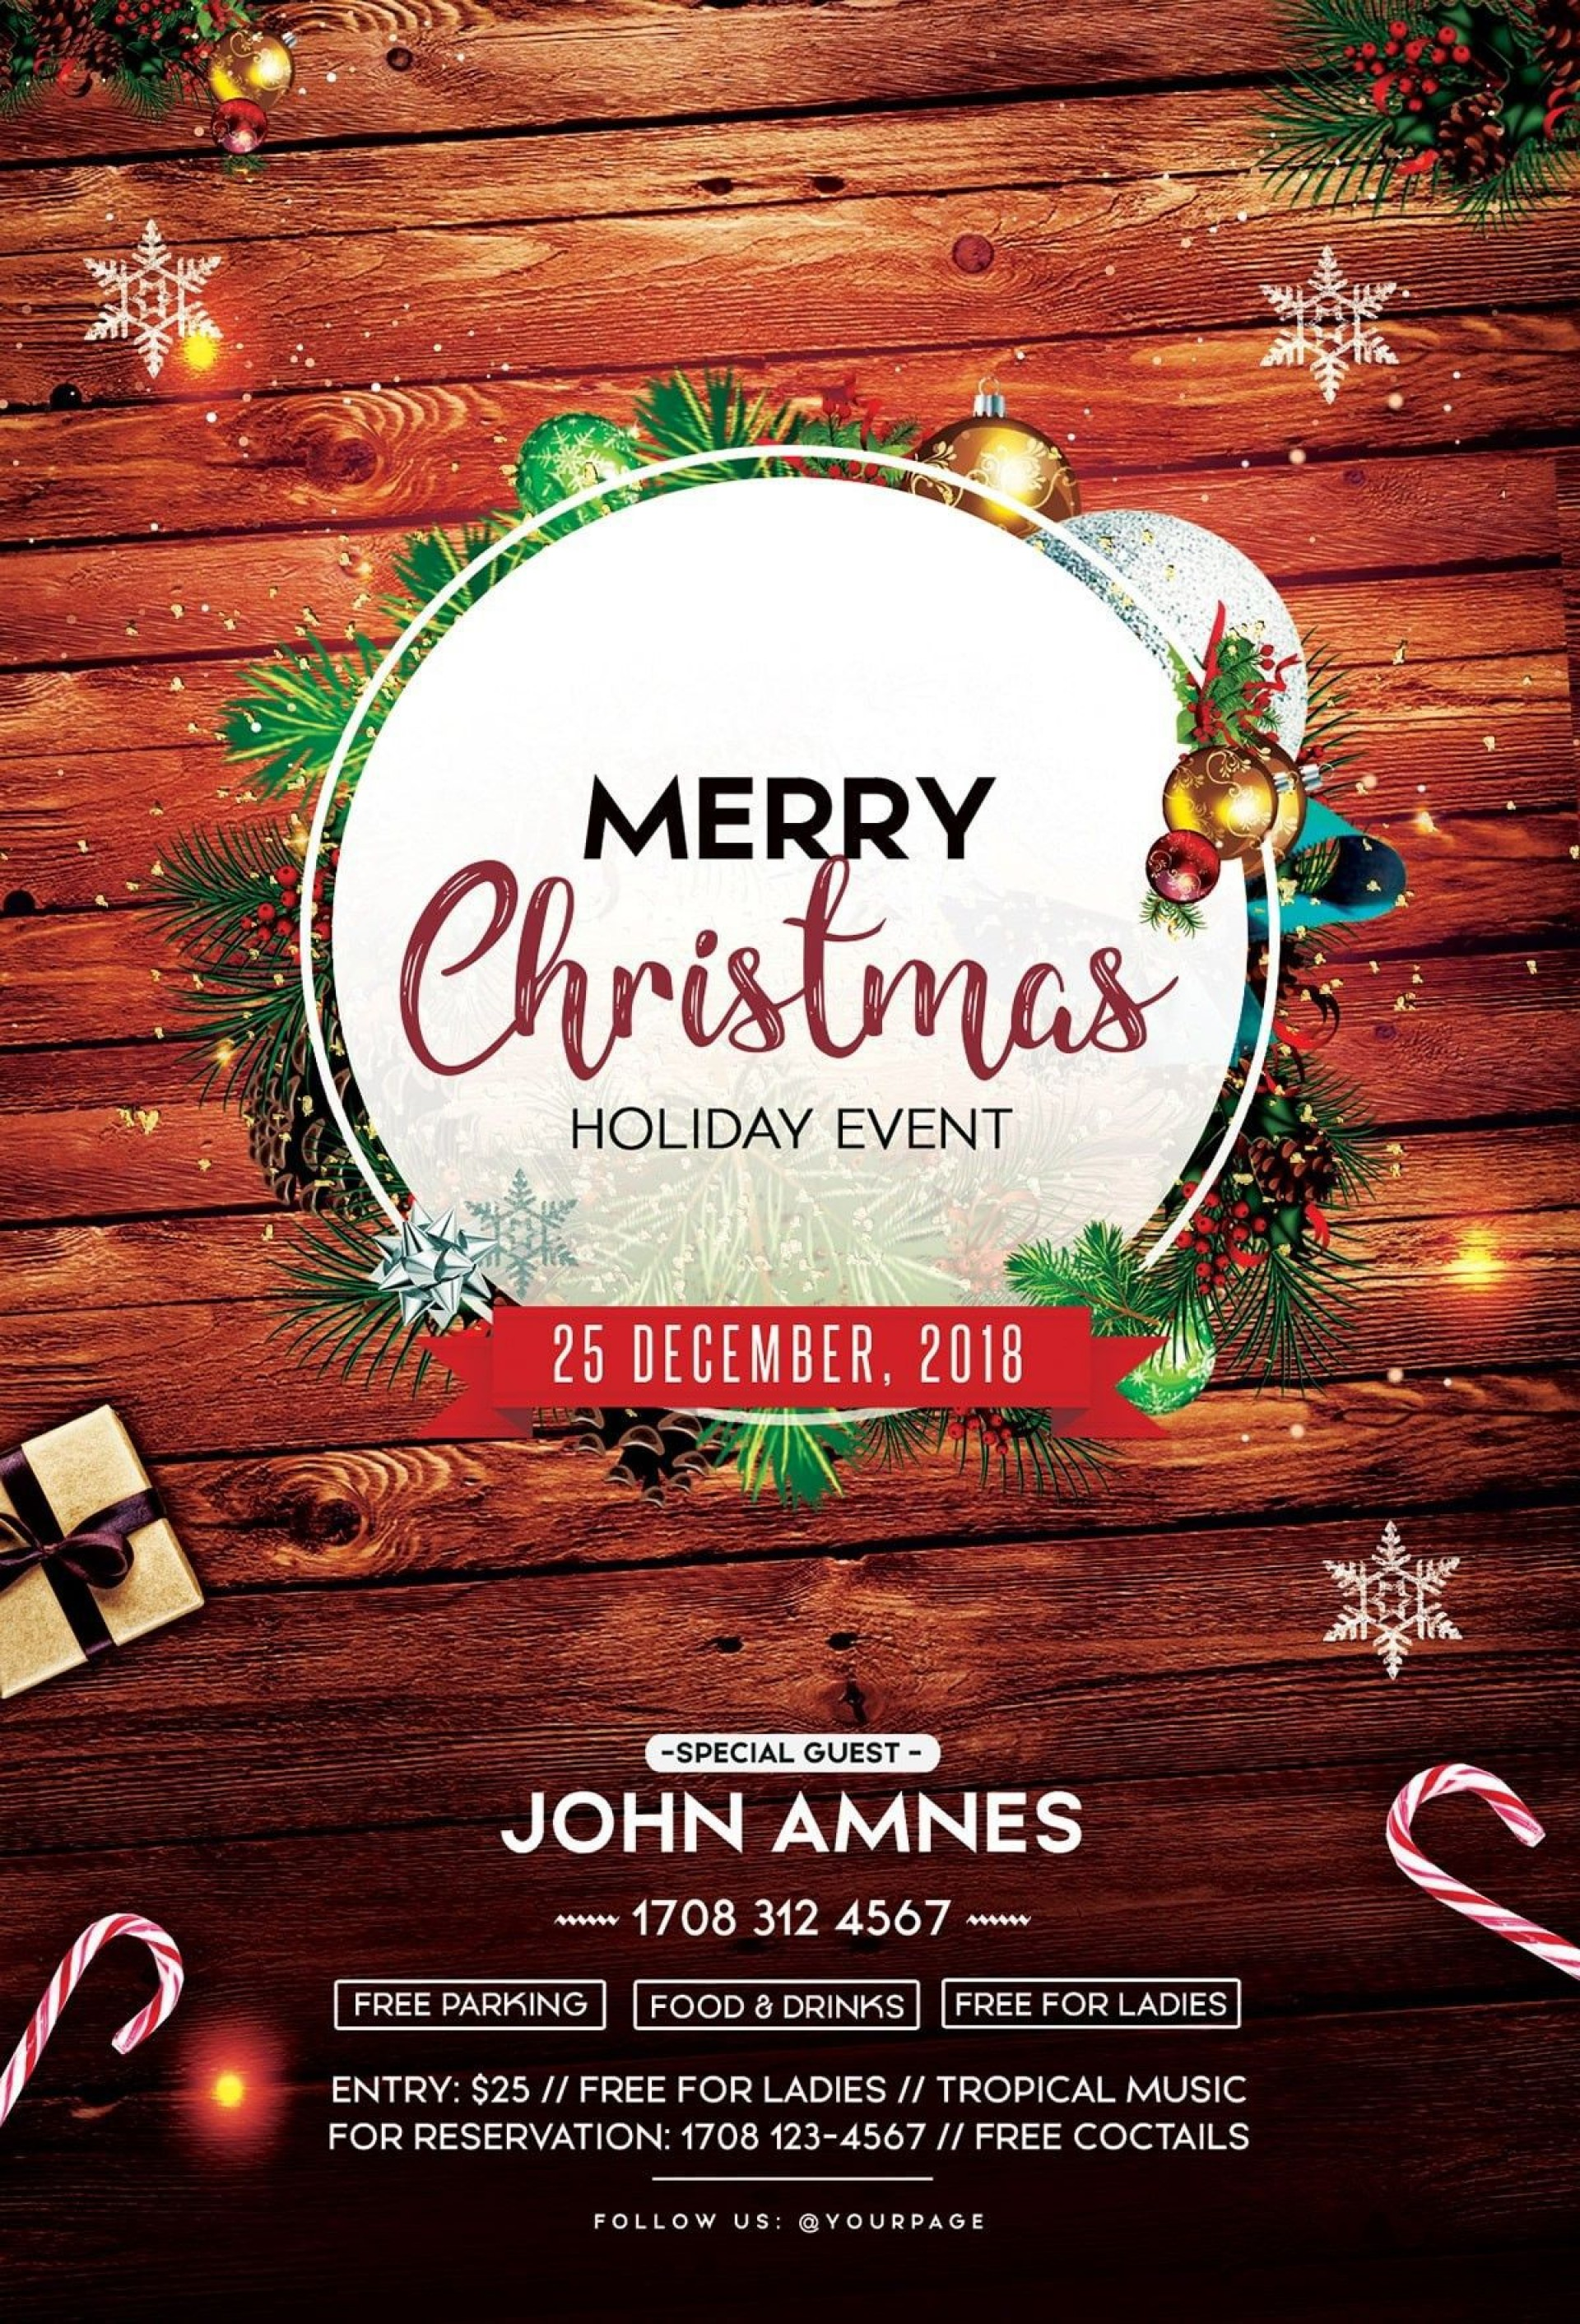 002 Remarkable Free Christma Poster Template High Resolution  Uk Party Download Fair1920